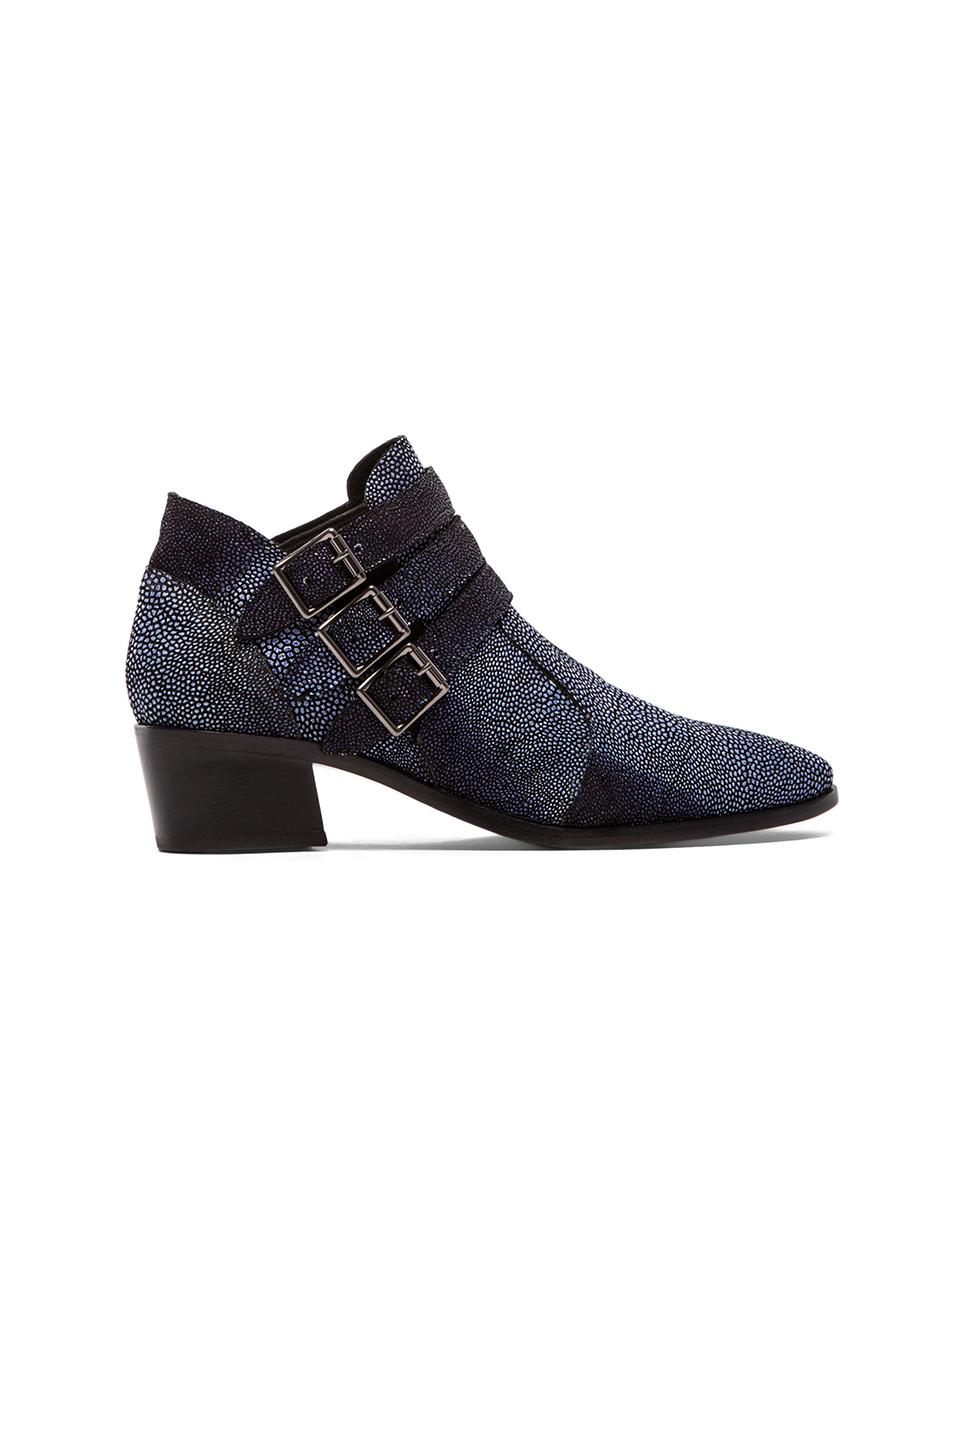 MODERN VICE COLLECTION Chloe Bootie in Blue Stingray